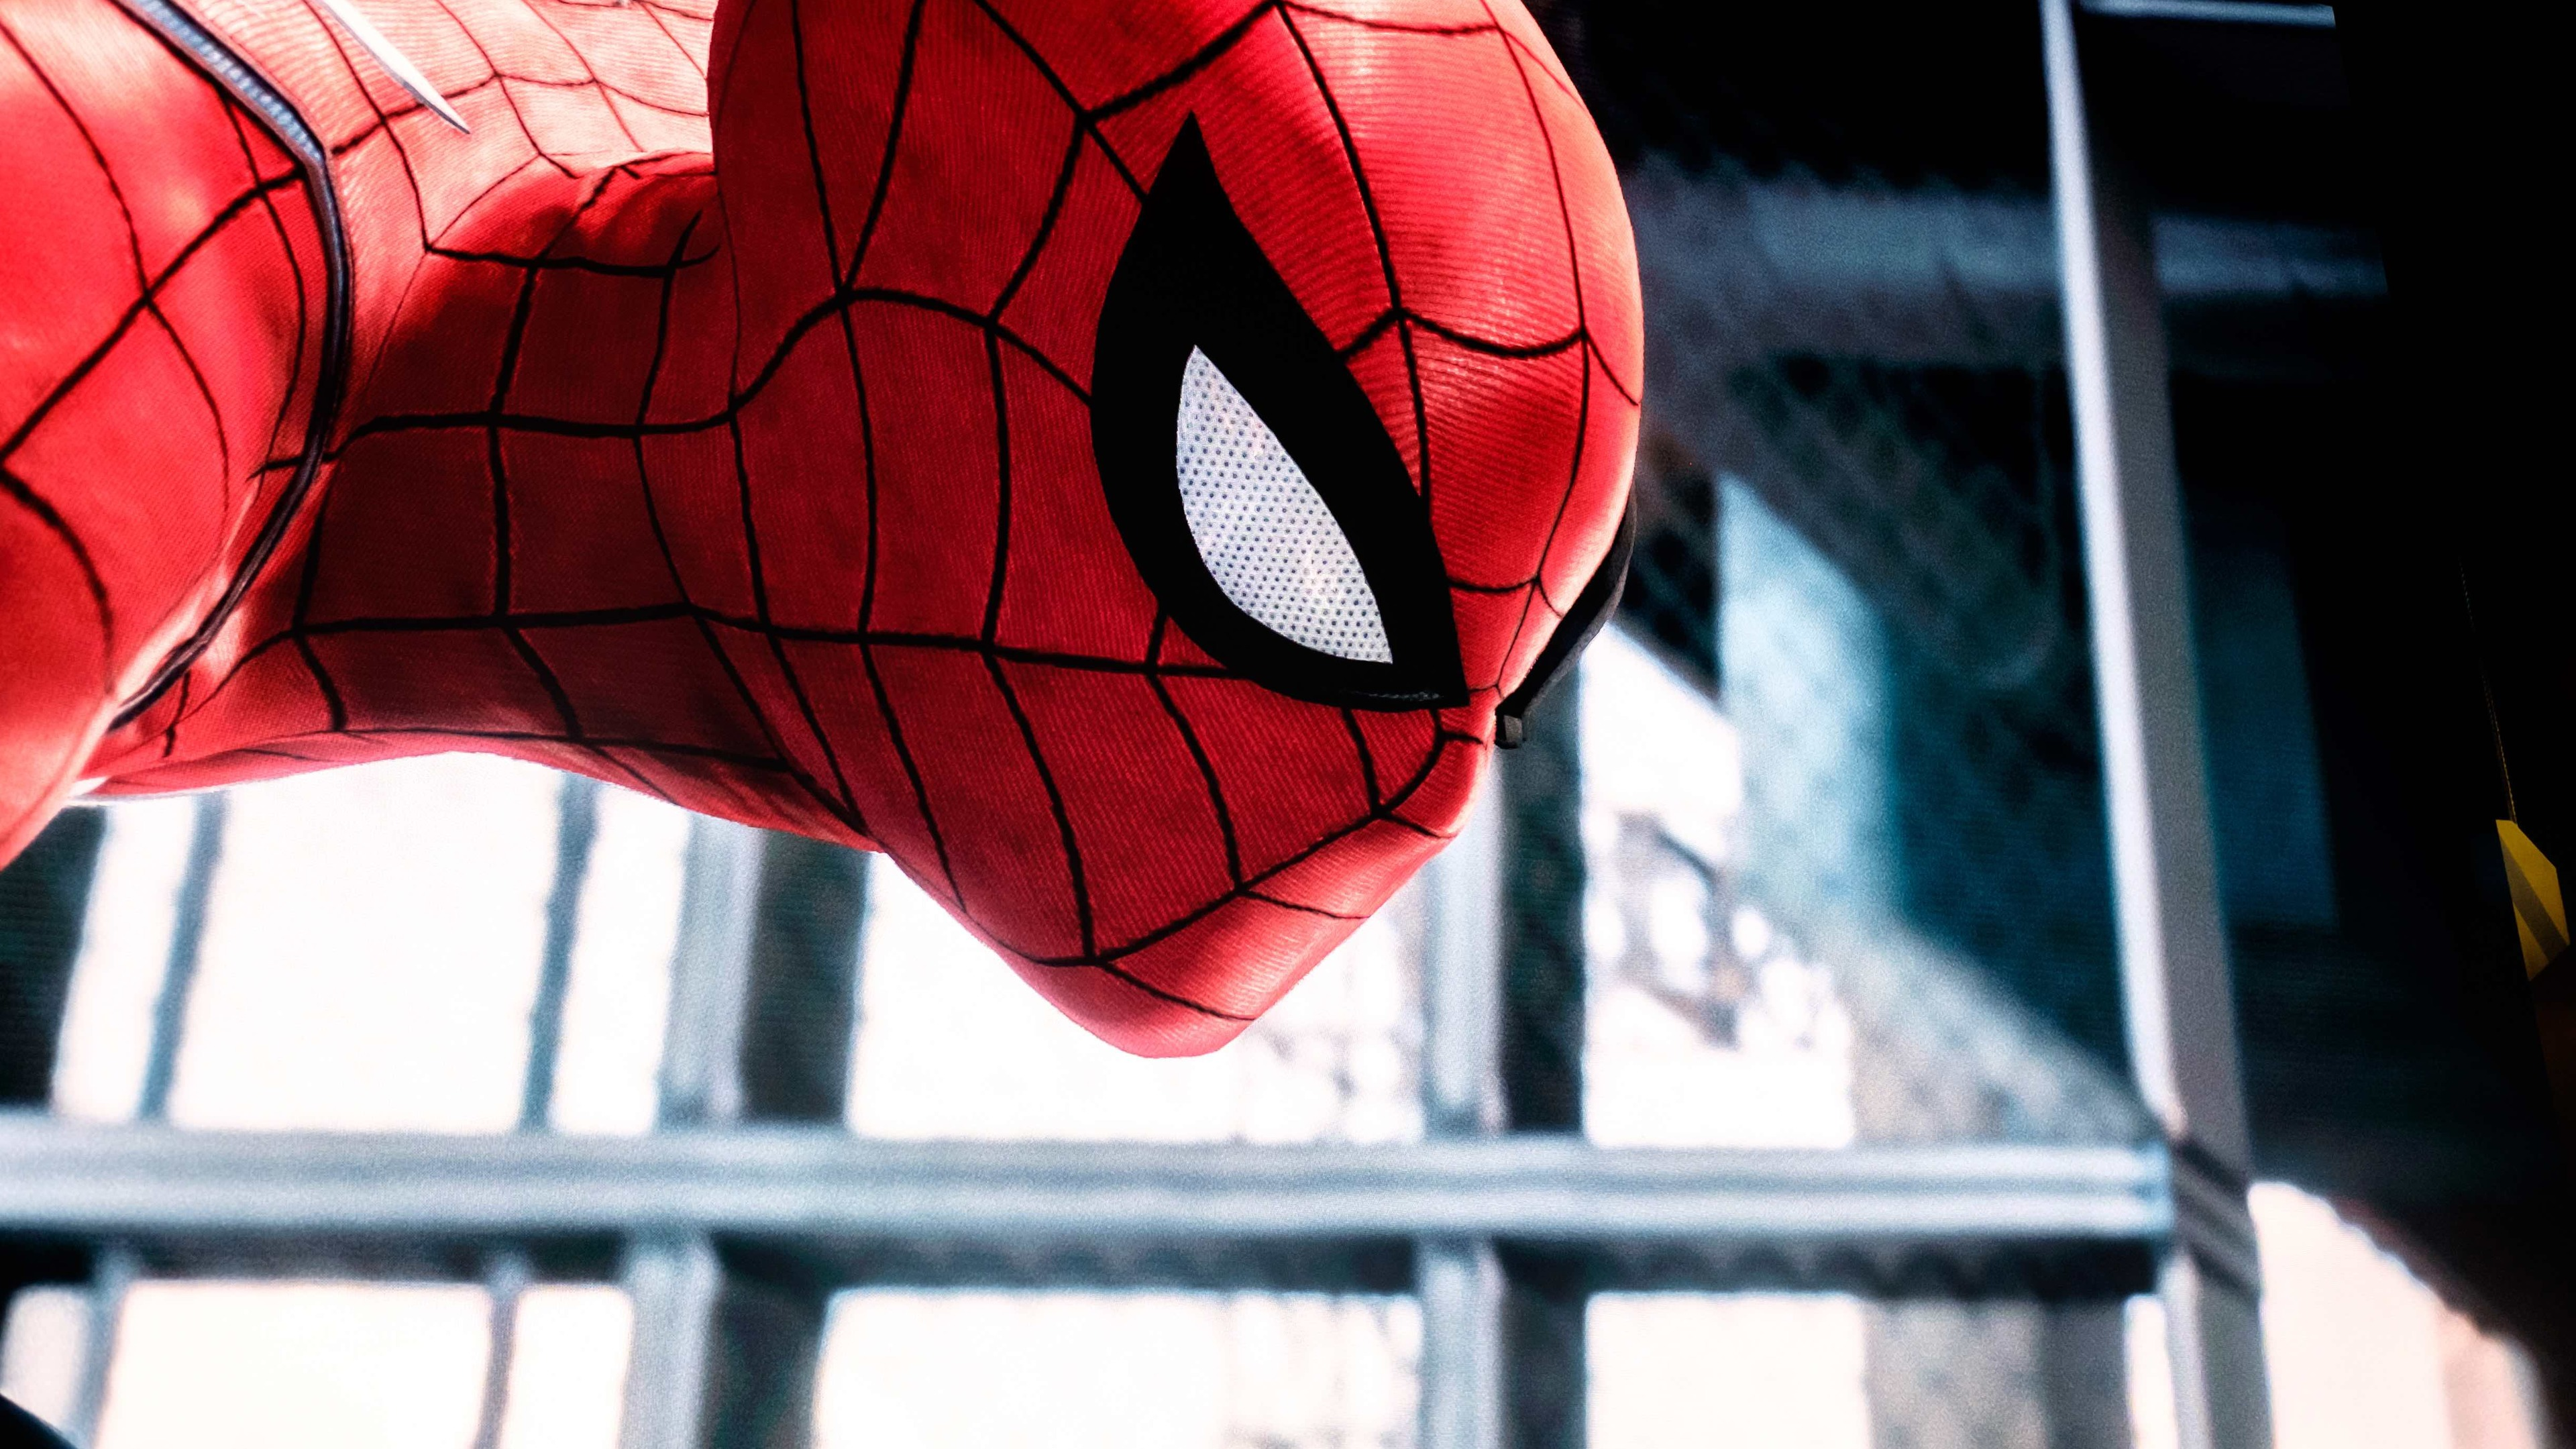 spiderman closeup 1536521809 - Spiderman Closeup - spiderman wallpapers, hd-wallpapers, 5k wallpapers, 4k-wallpapers